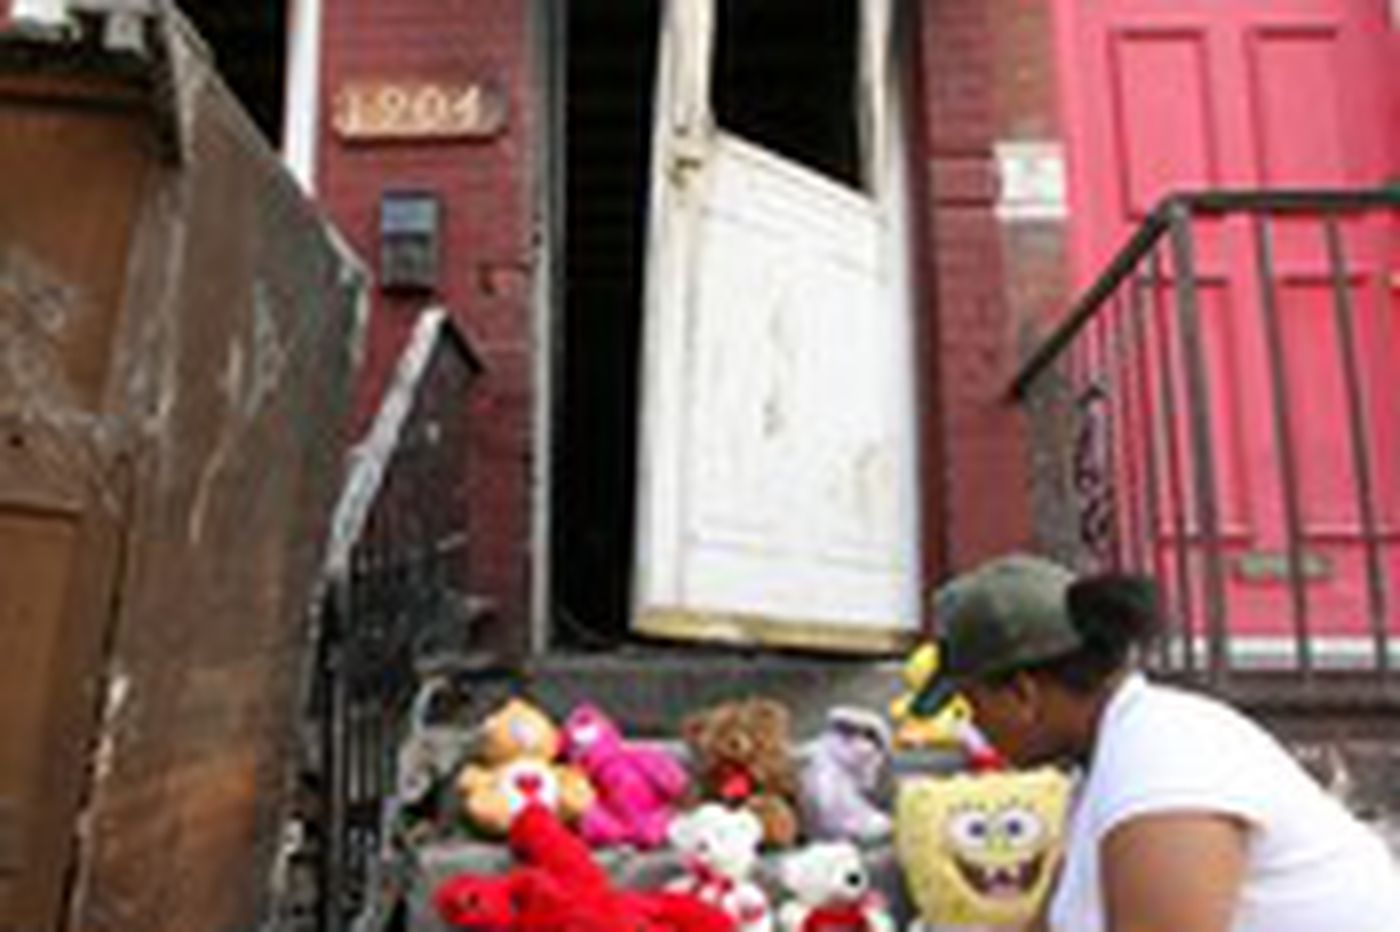 Fire victim, 5, was home alone